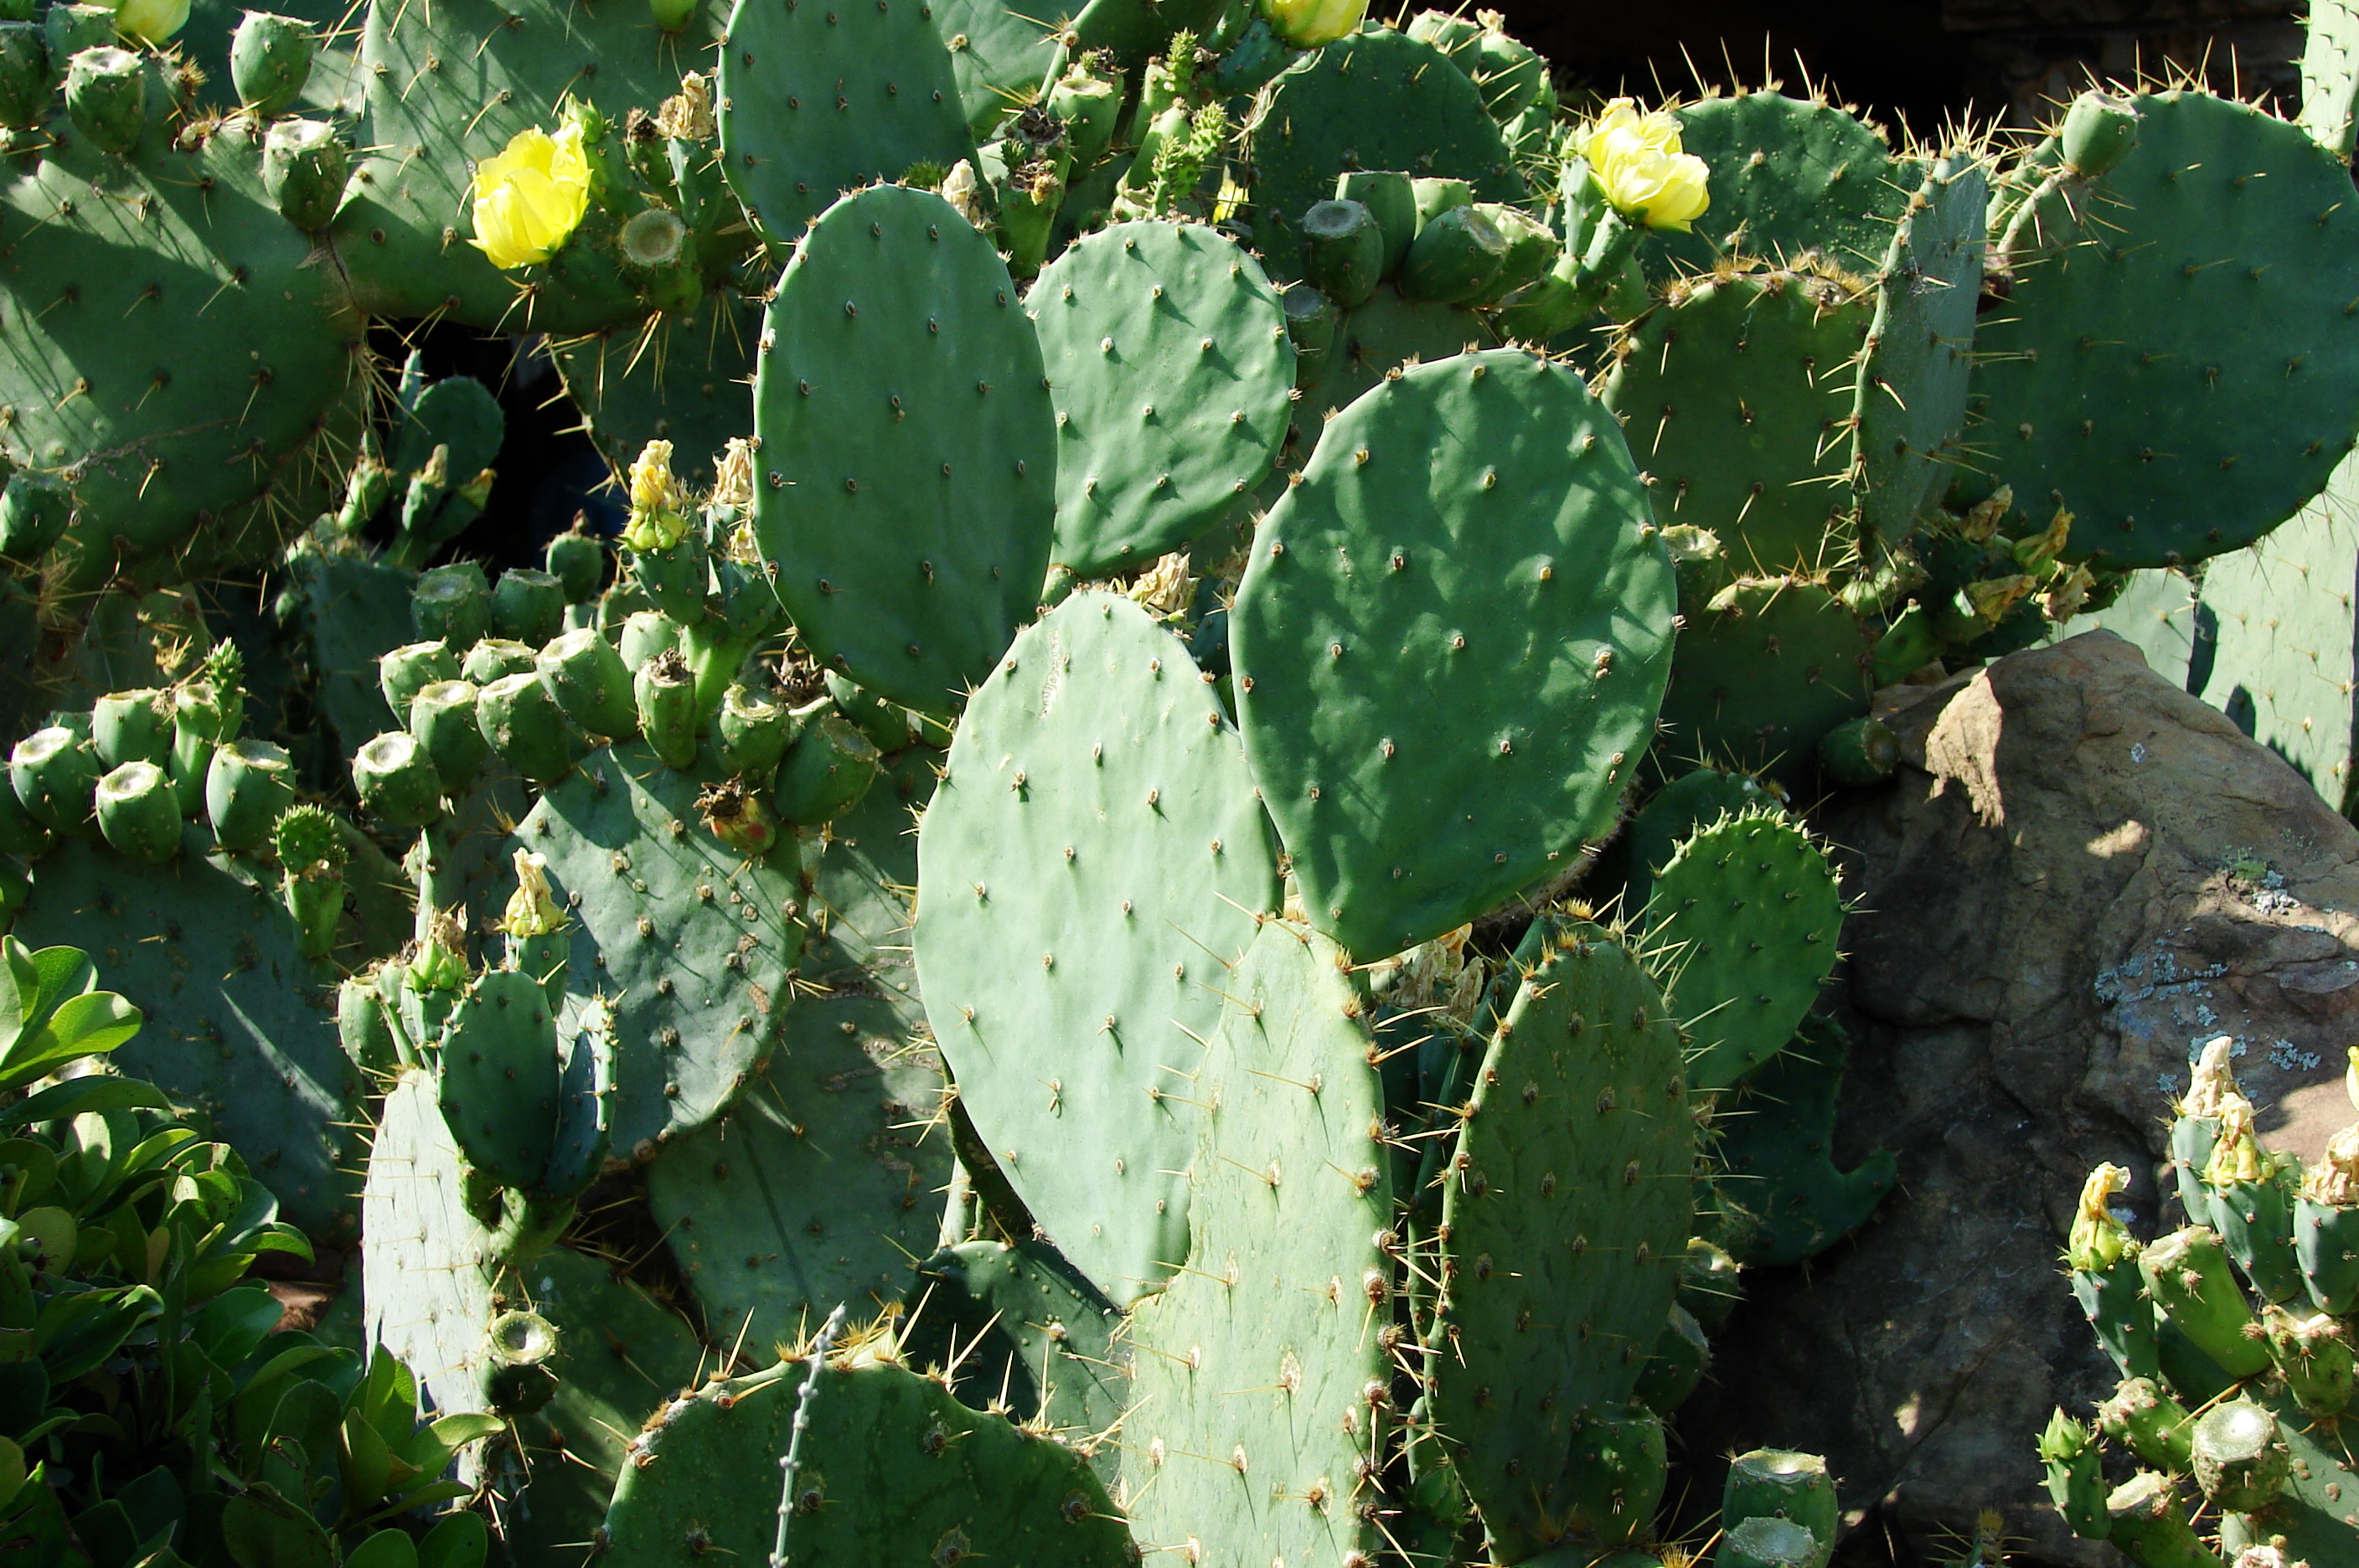 File:Cactus-Prickly-Pear-3901.jpg - Wikimedia Commons